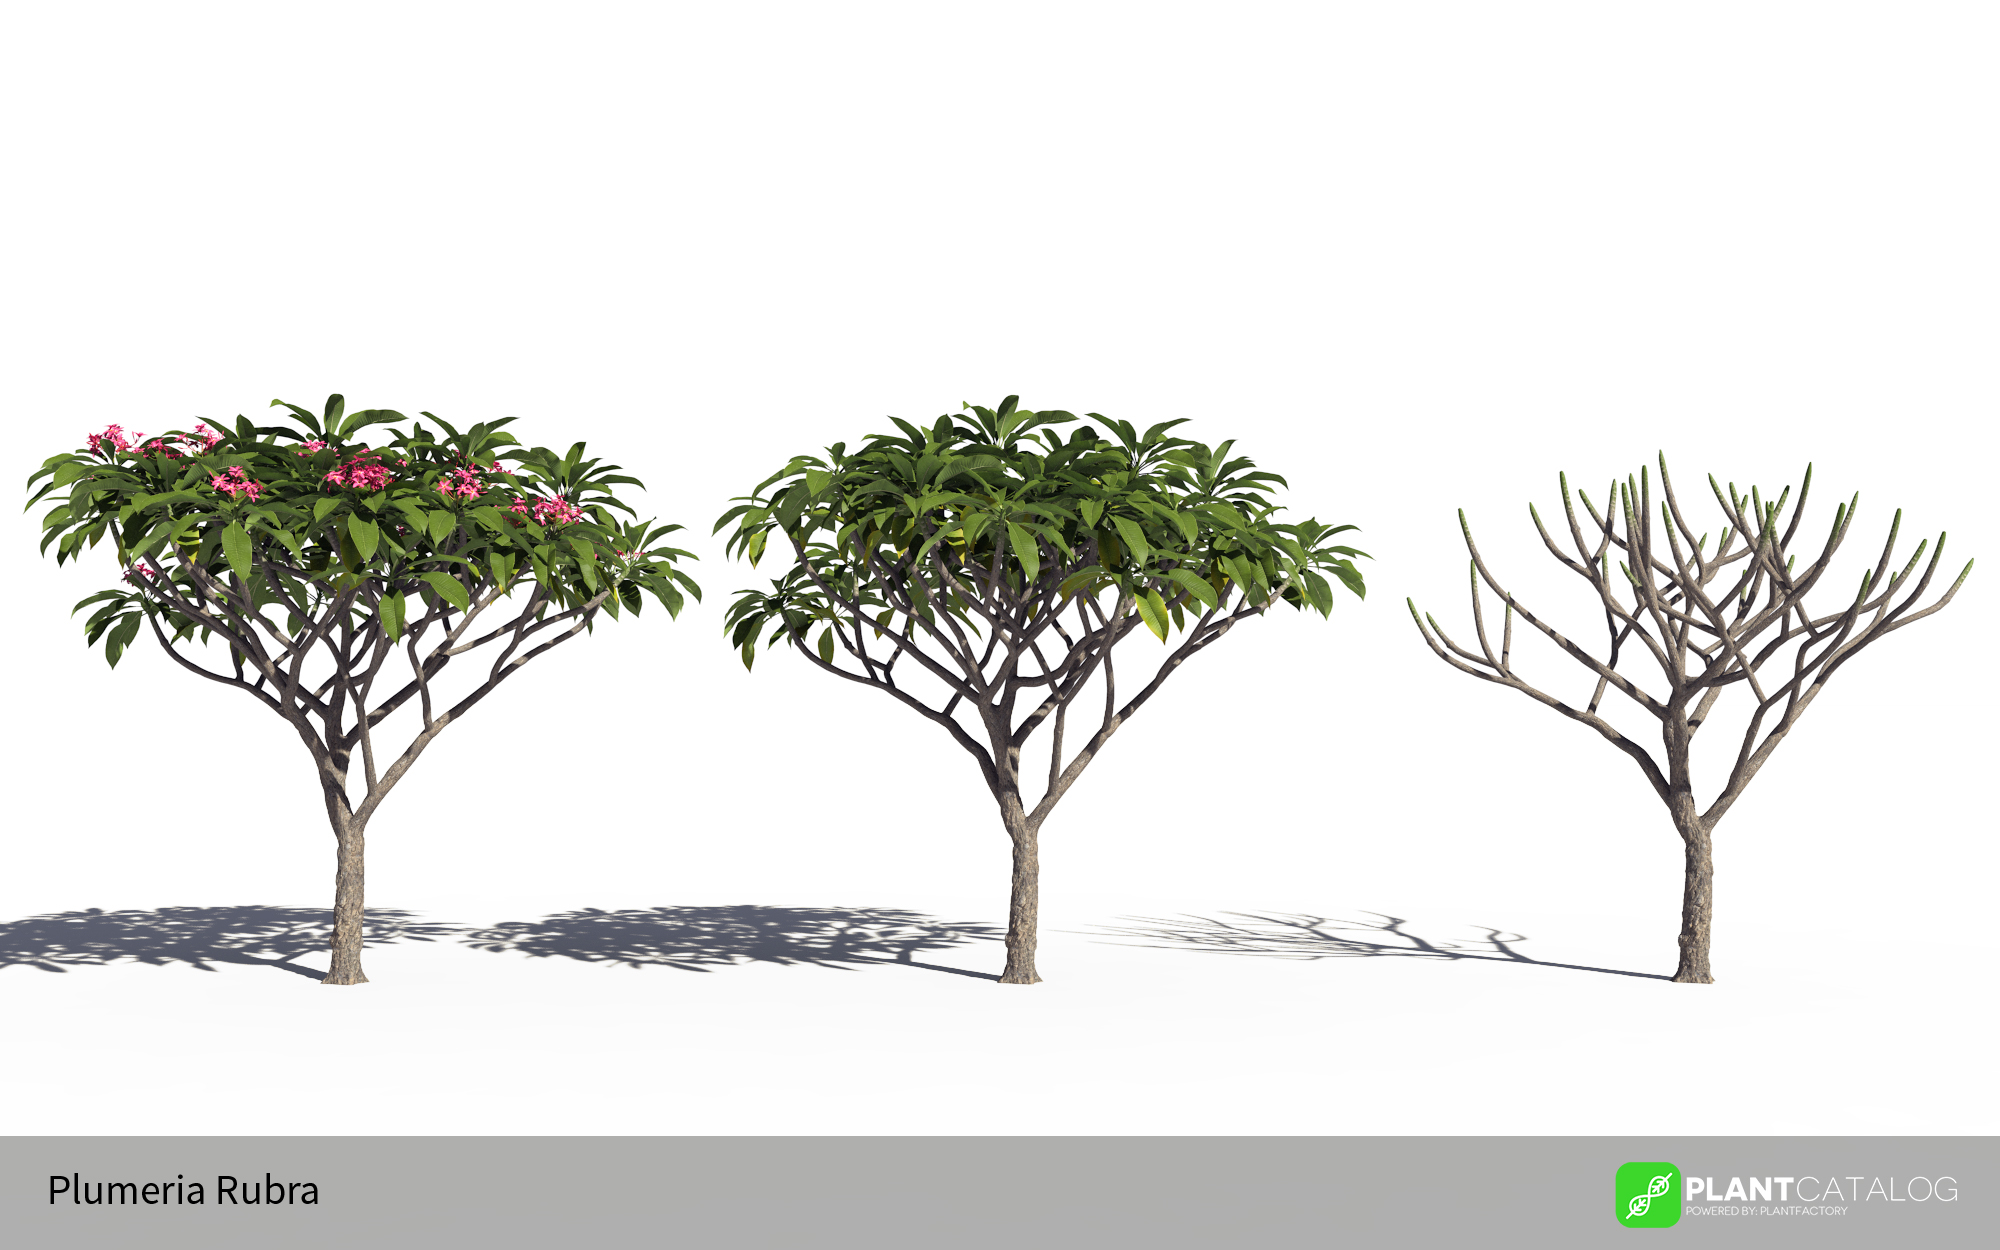 3D model of the Frangipani tree - Plumeria rubra pink - from the PlantCatalog, rendered in VUE